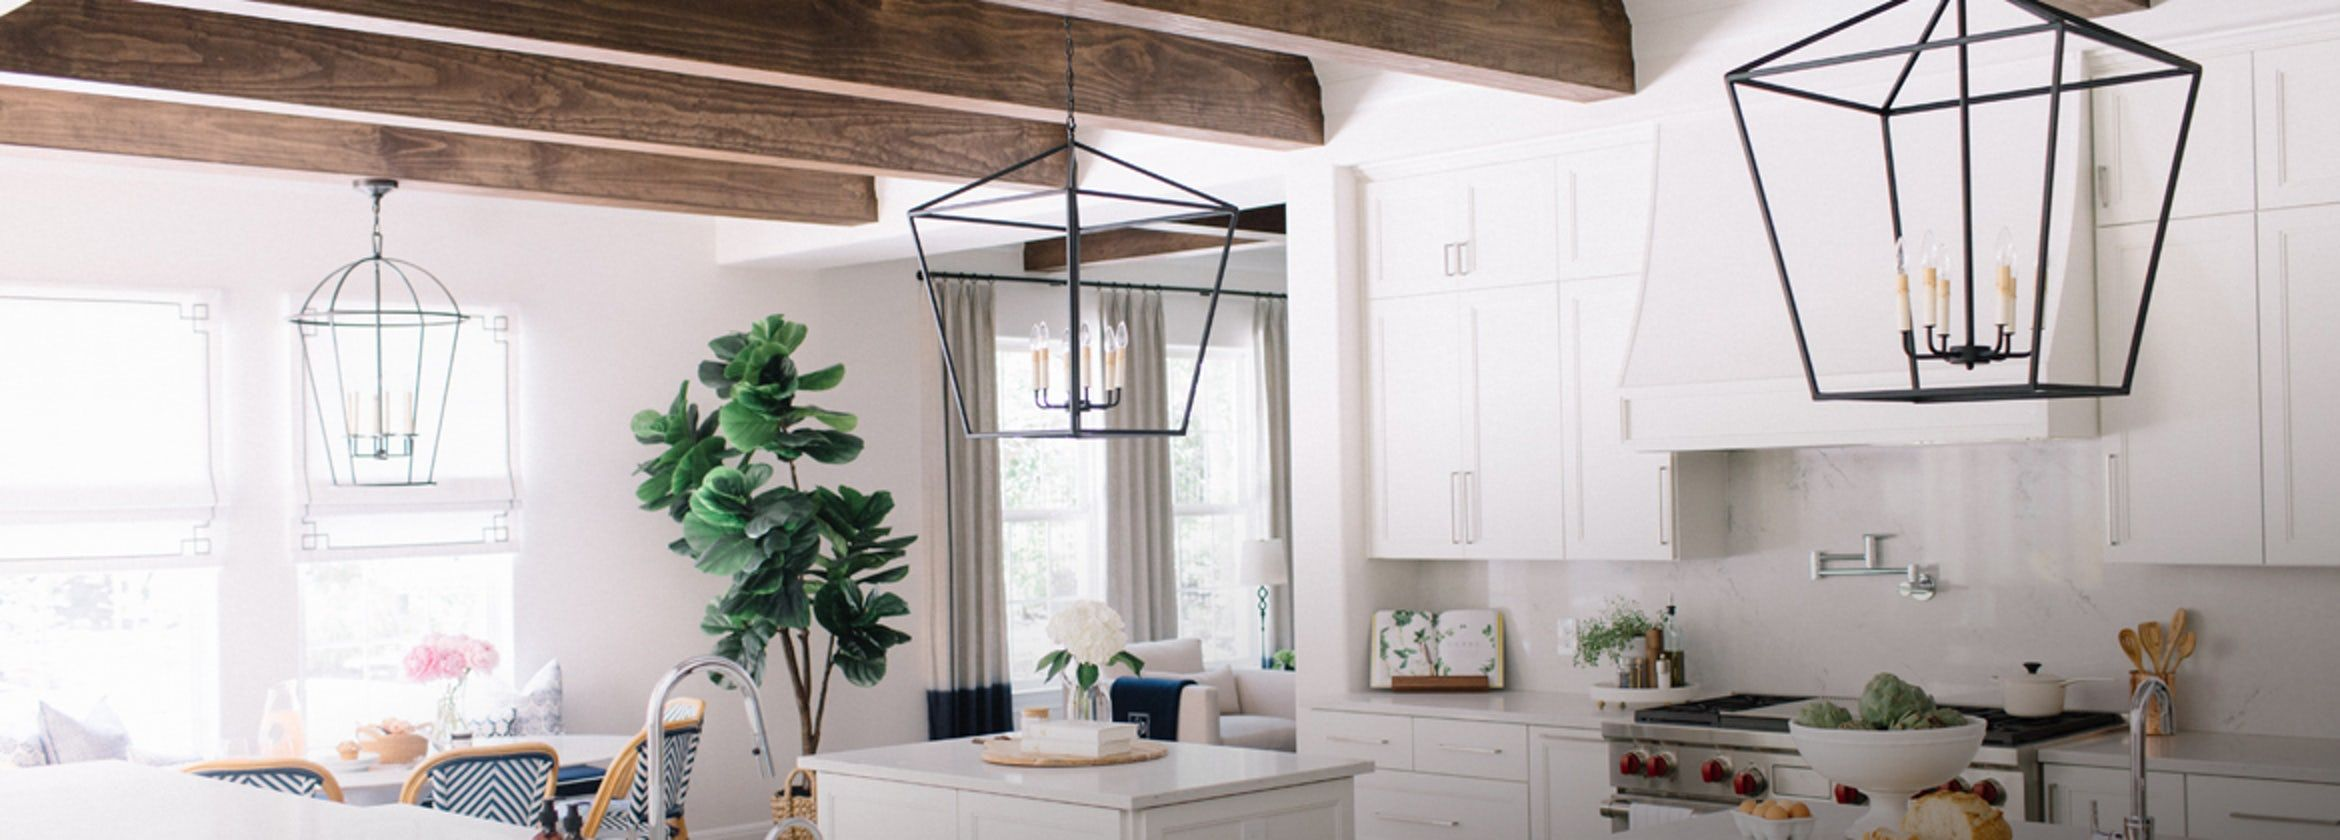 Cage Pendant Lights Banner 1170x420 Kitchens Interior Design